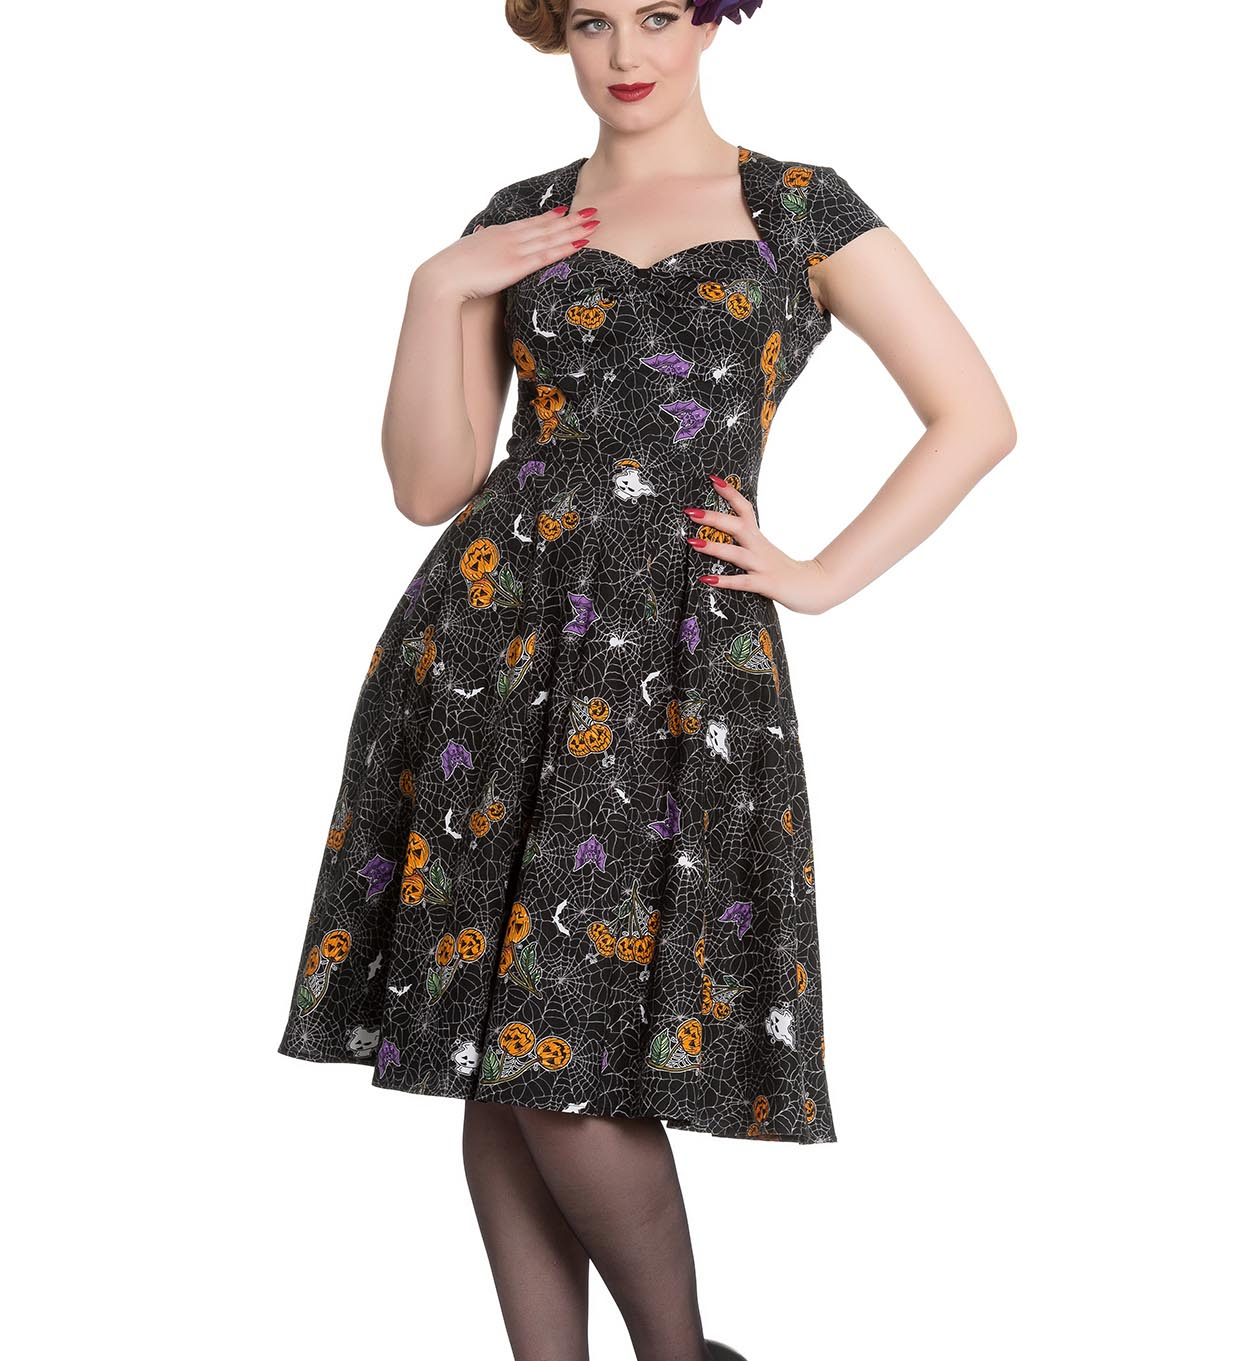 Hell-Bunny-Black-Pinup-50s-Goth-Webs-Dress-HARLOW-Halloween-All-Sizes thumbnail 27